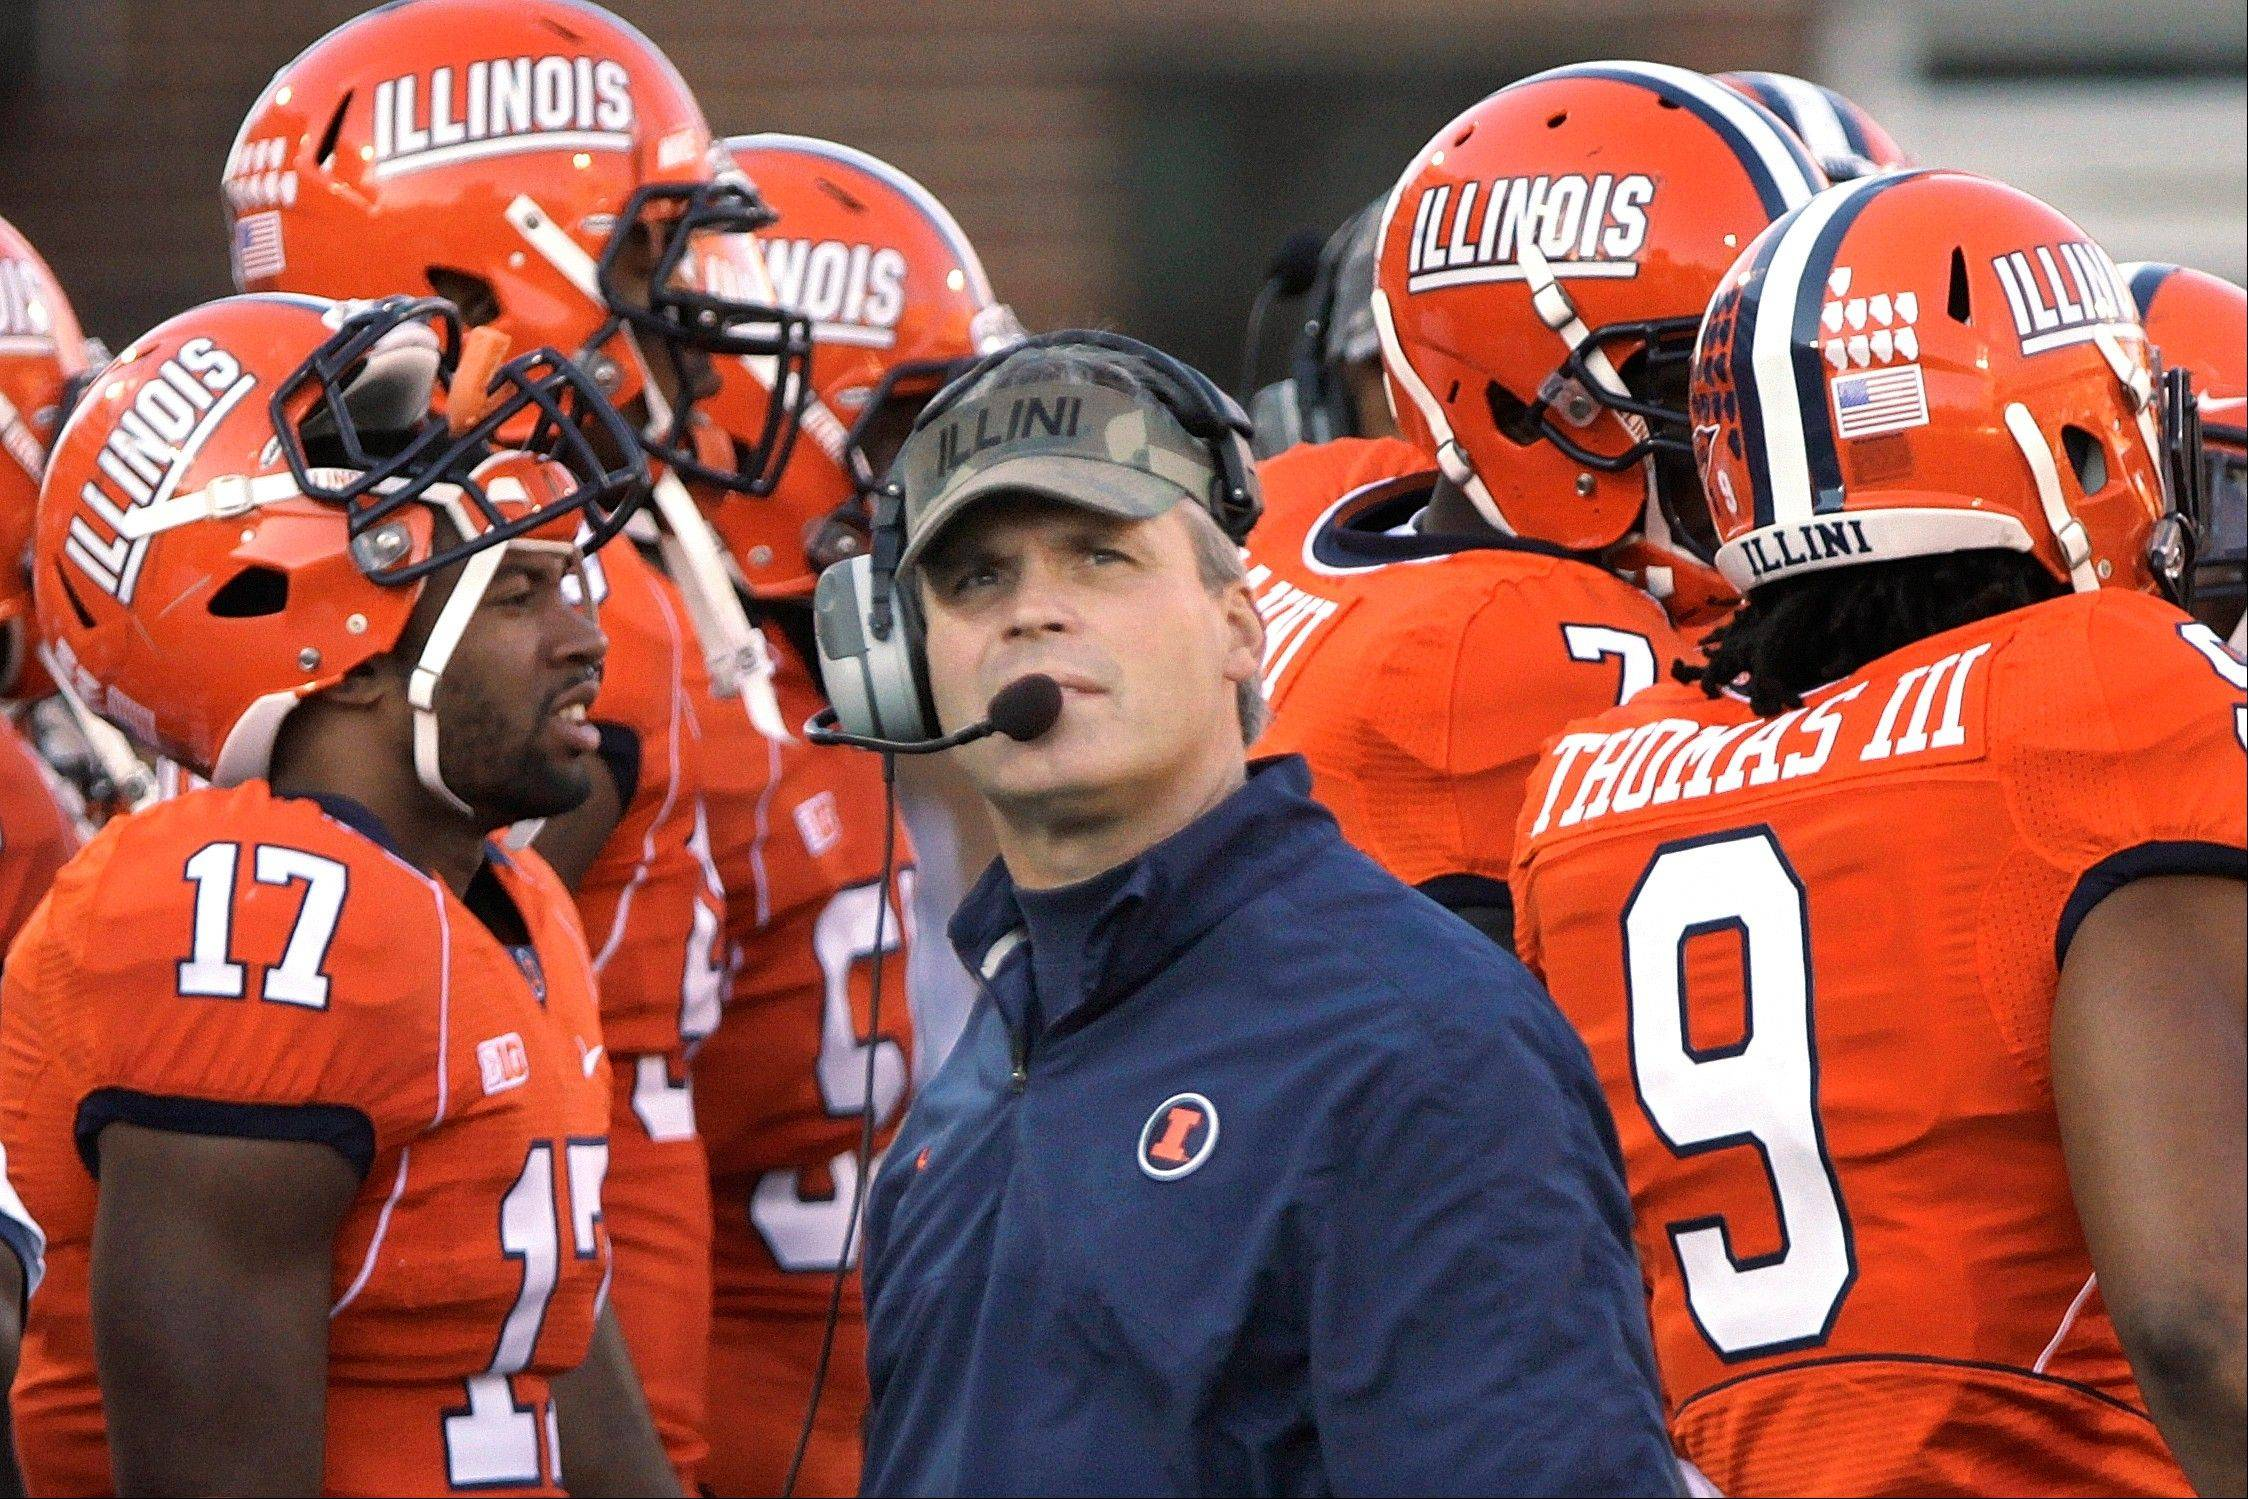 In this Nov. 10, 2012 photo, Illinois head coach Tim Beckman looks at the clock during a time out during the first half of an NCAA college football game between Illinois and Minnesota in Champaign, Ill. The Illini are the only Big Ten team without a conference win this season. Purdue plays at Illinois this Saturday, Nov. 17.